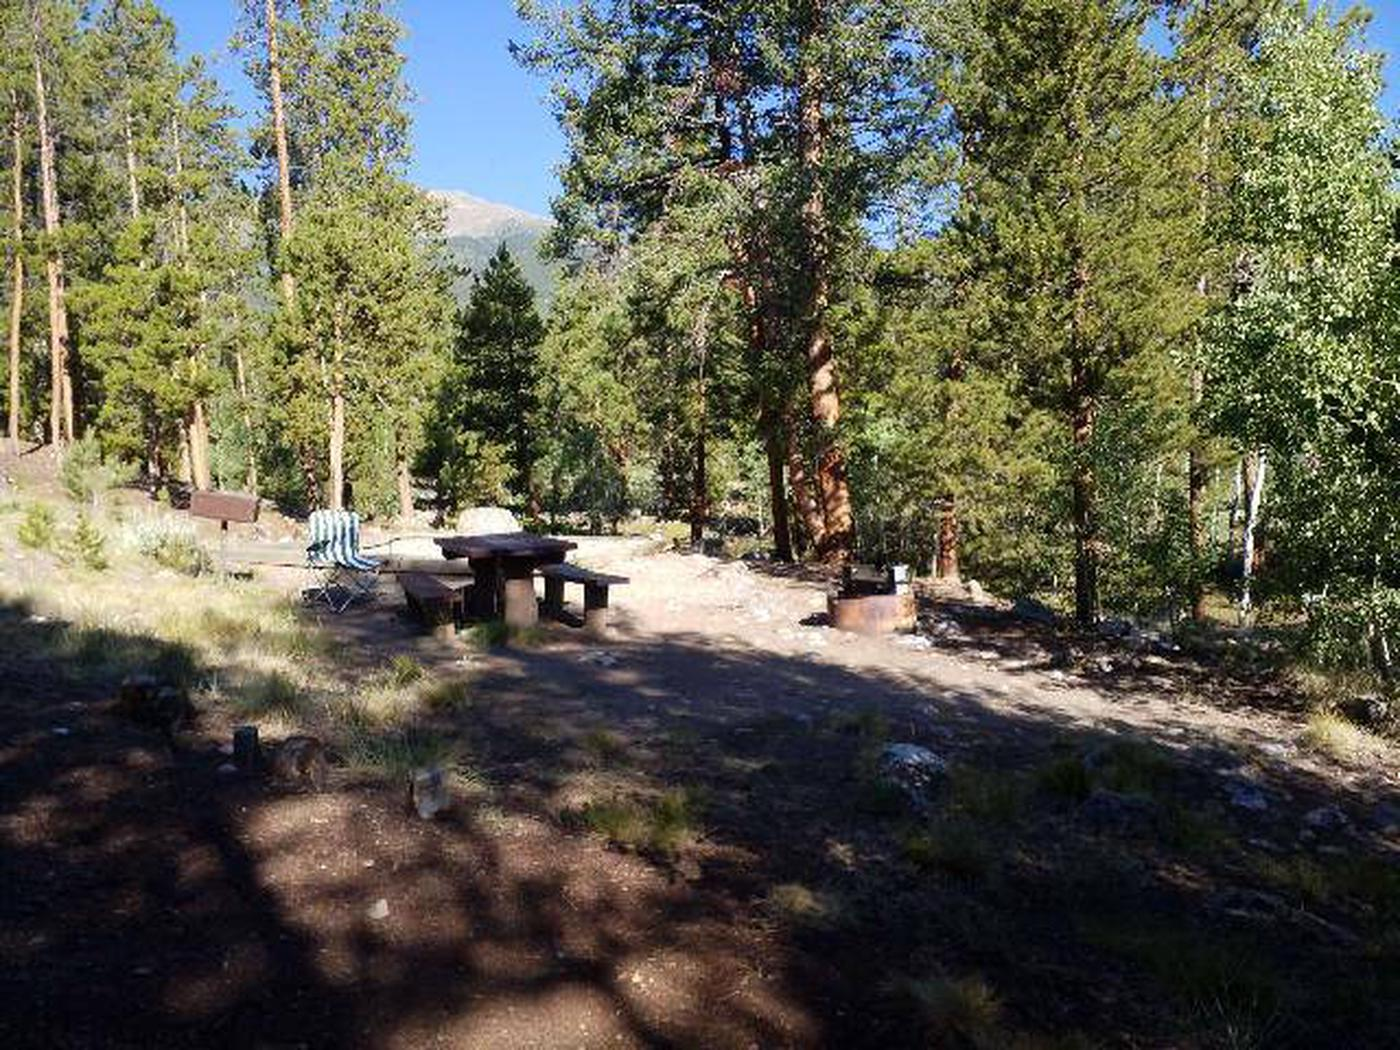 White Star Campground, site 66 picnic table